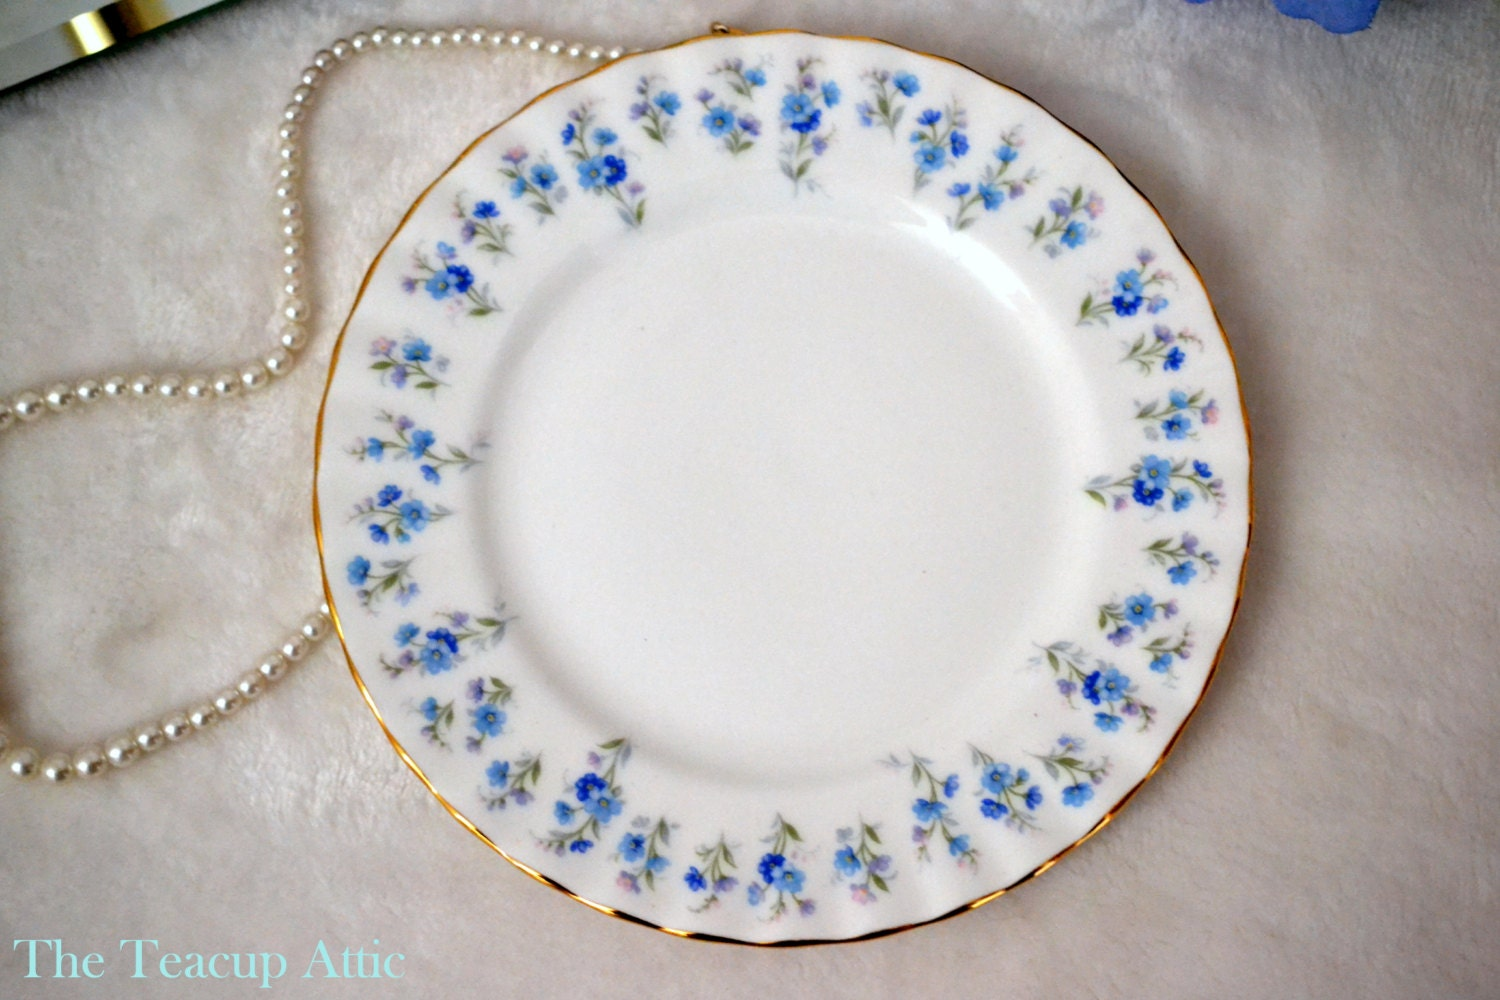 Royal Albert Memory Lane Bread and Butter Plate, English Bone China Bread And Butter, Afternoon Tea, Replacement China,  ca 1970